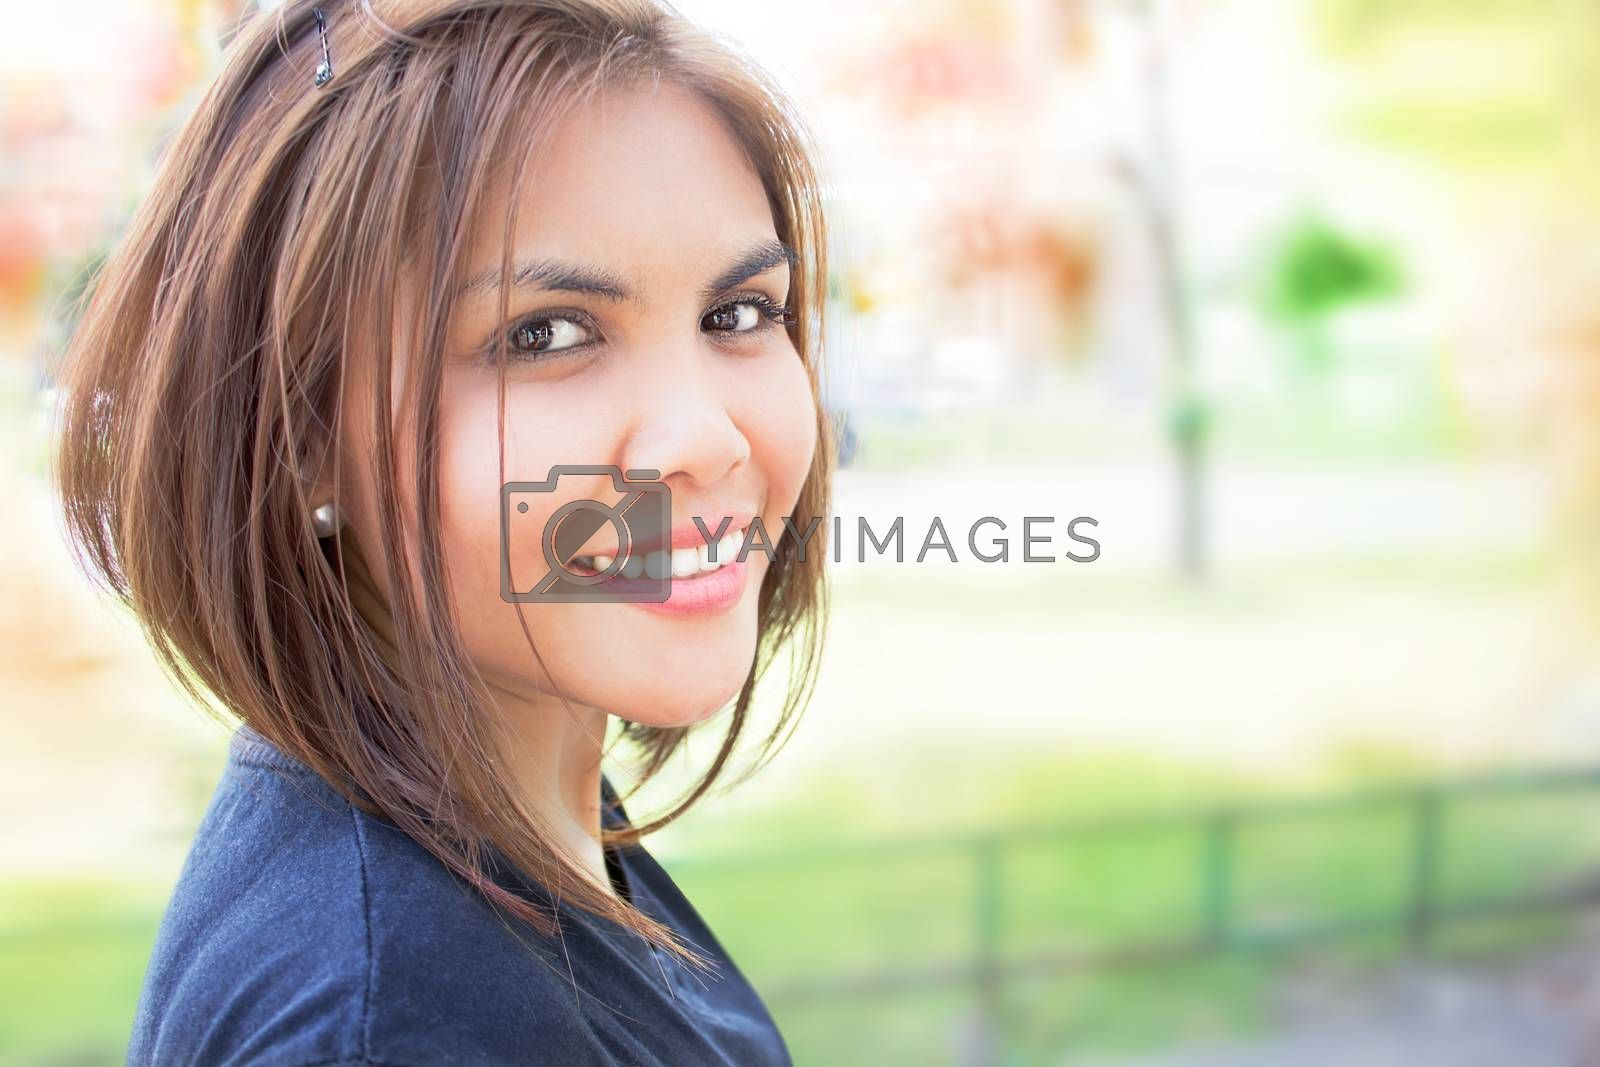 Happy lady with blur background